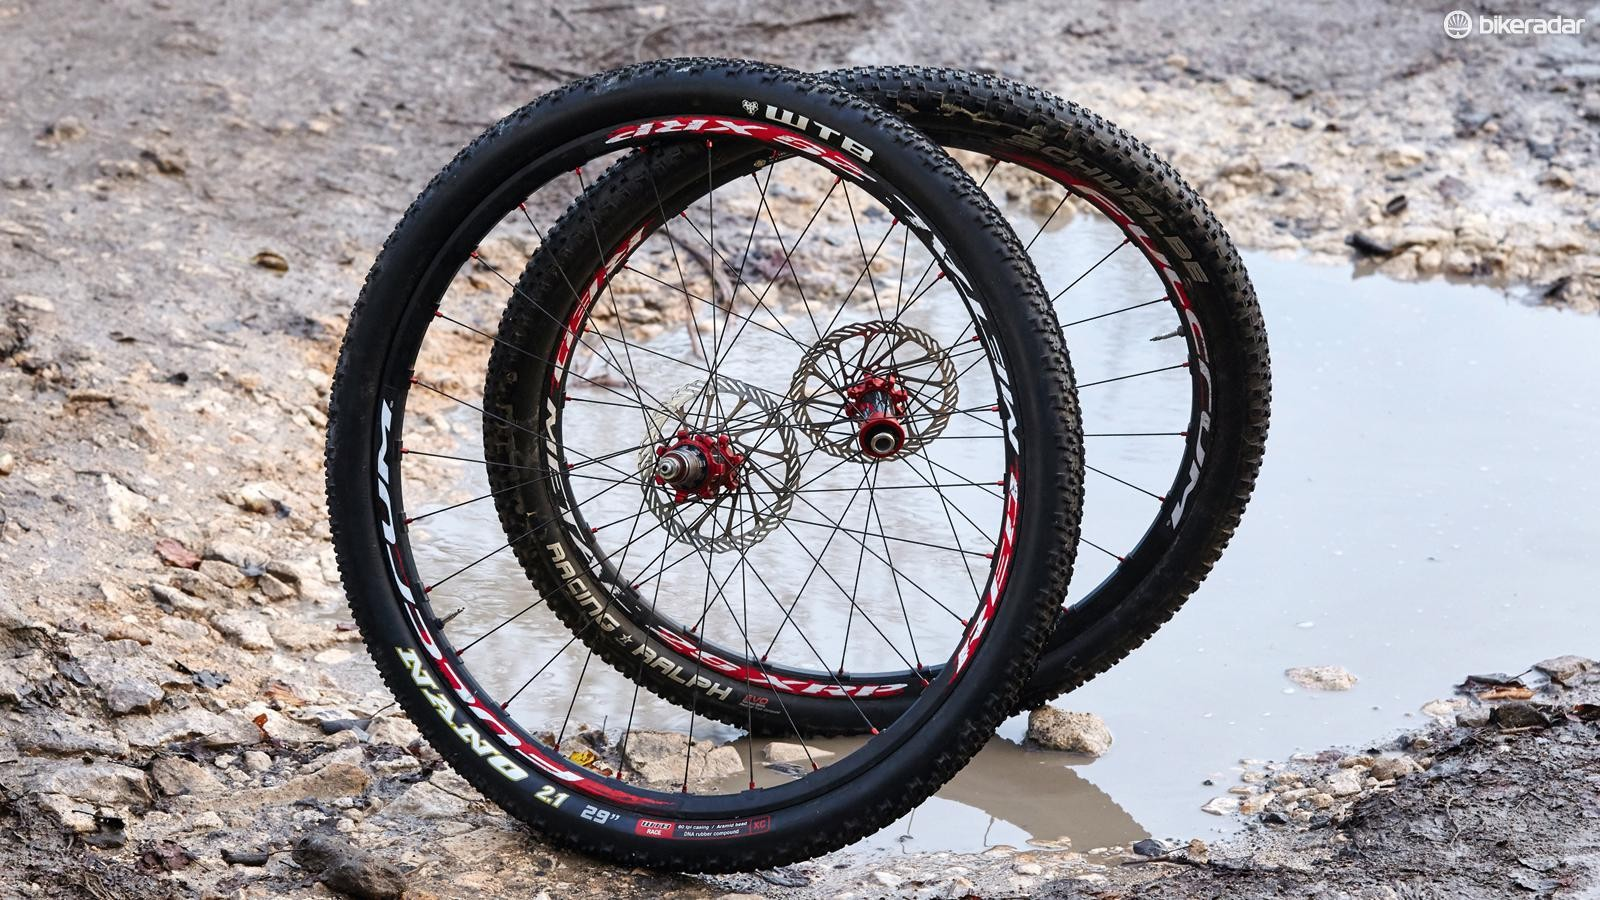 Fulcrum Red Metal XRP 29 wheels